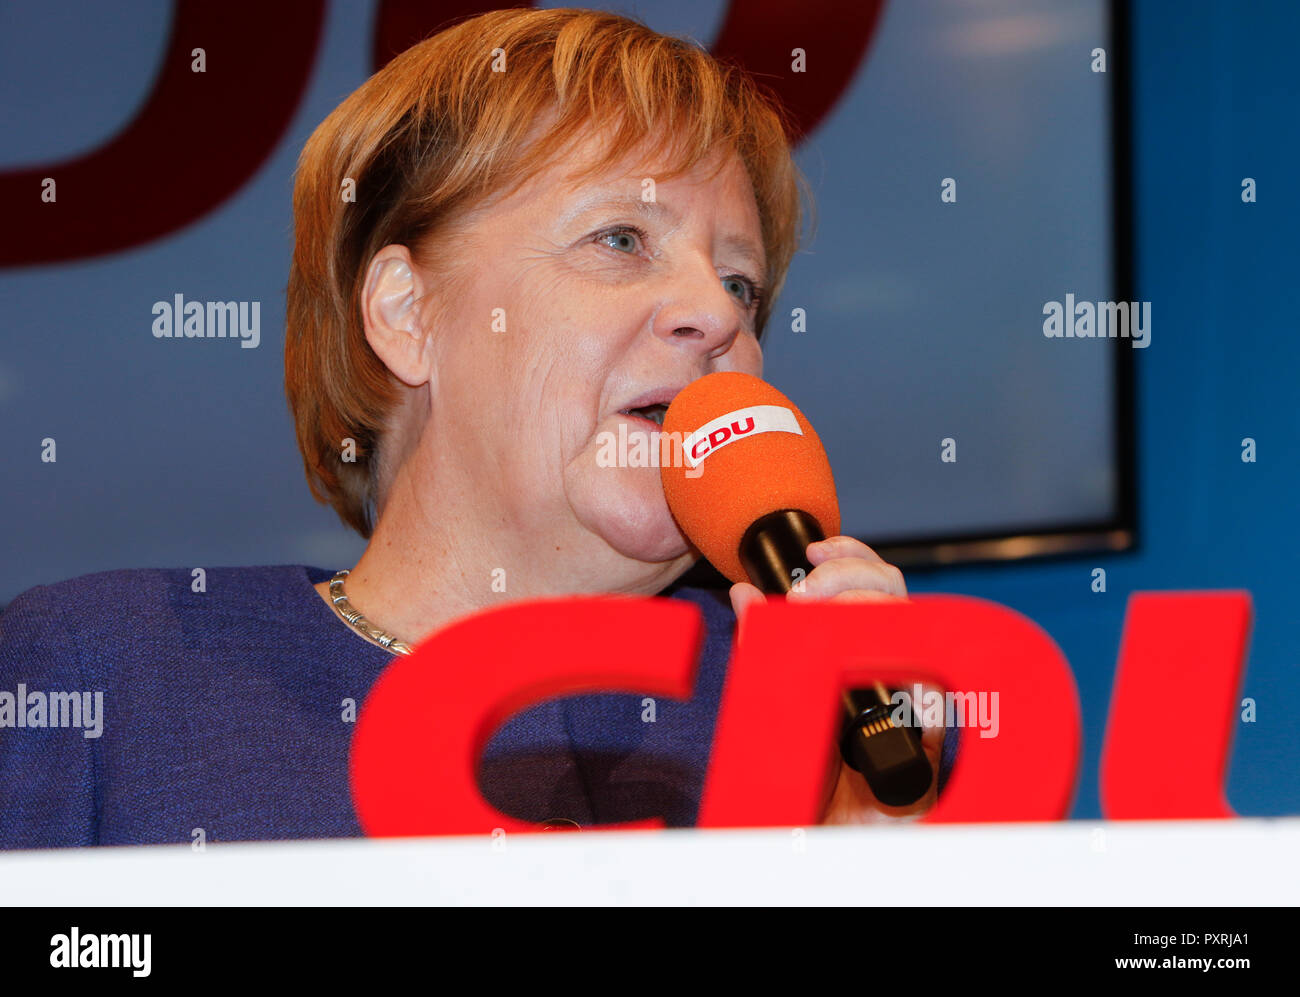 Dieburg, Germany. 23rd October 2018. Angela Merkel, the Chancellor of Germany, speaks at the election rally. German Chancellor Angela Merkel attended a political rally of her CDU party in Dieburg ahead of the upcoming state election in the German state of Hesse. With less than a week to go to the election, the CDU is still leading the polls, but gas lost more than 10% compared to the last election. - Stock Image